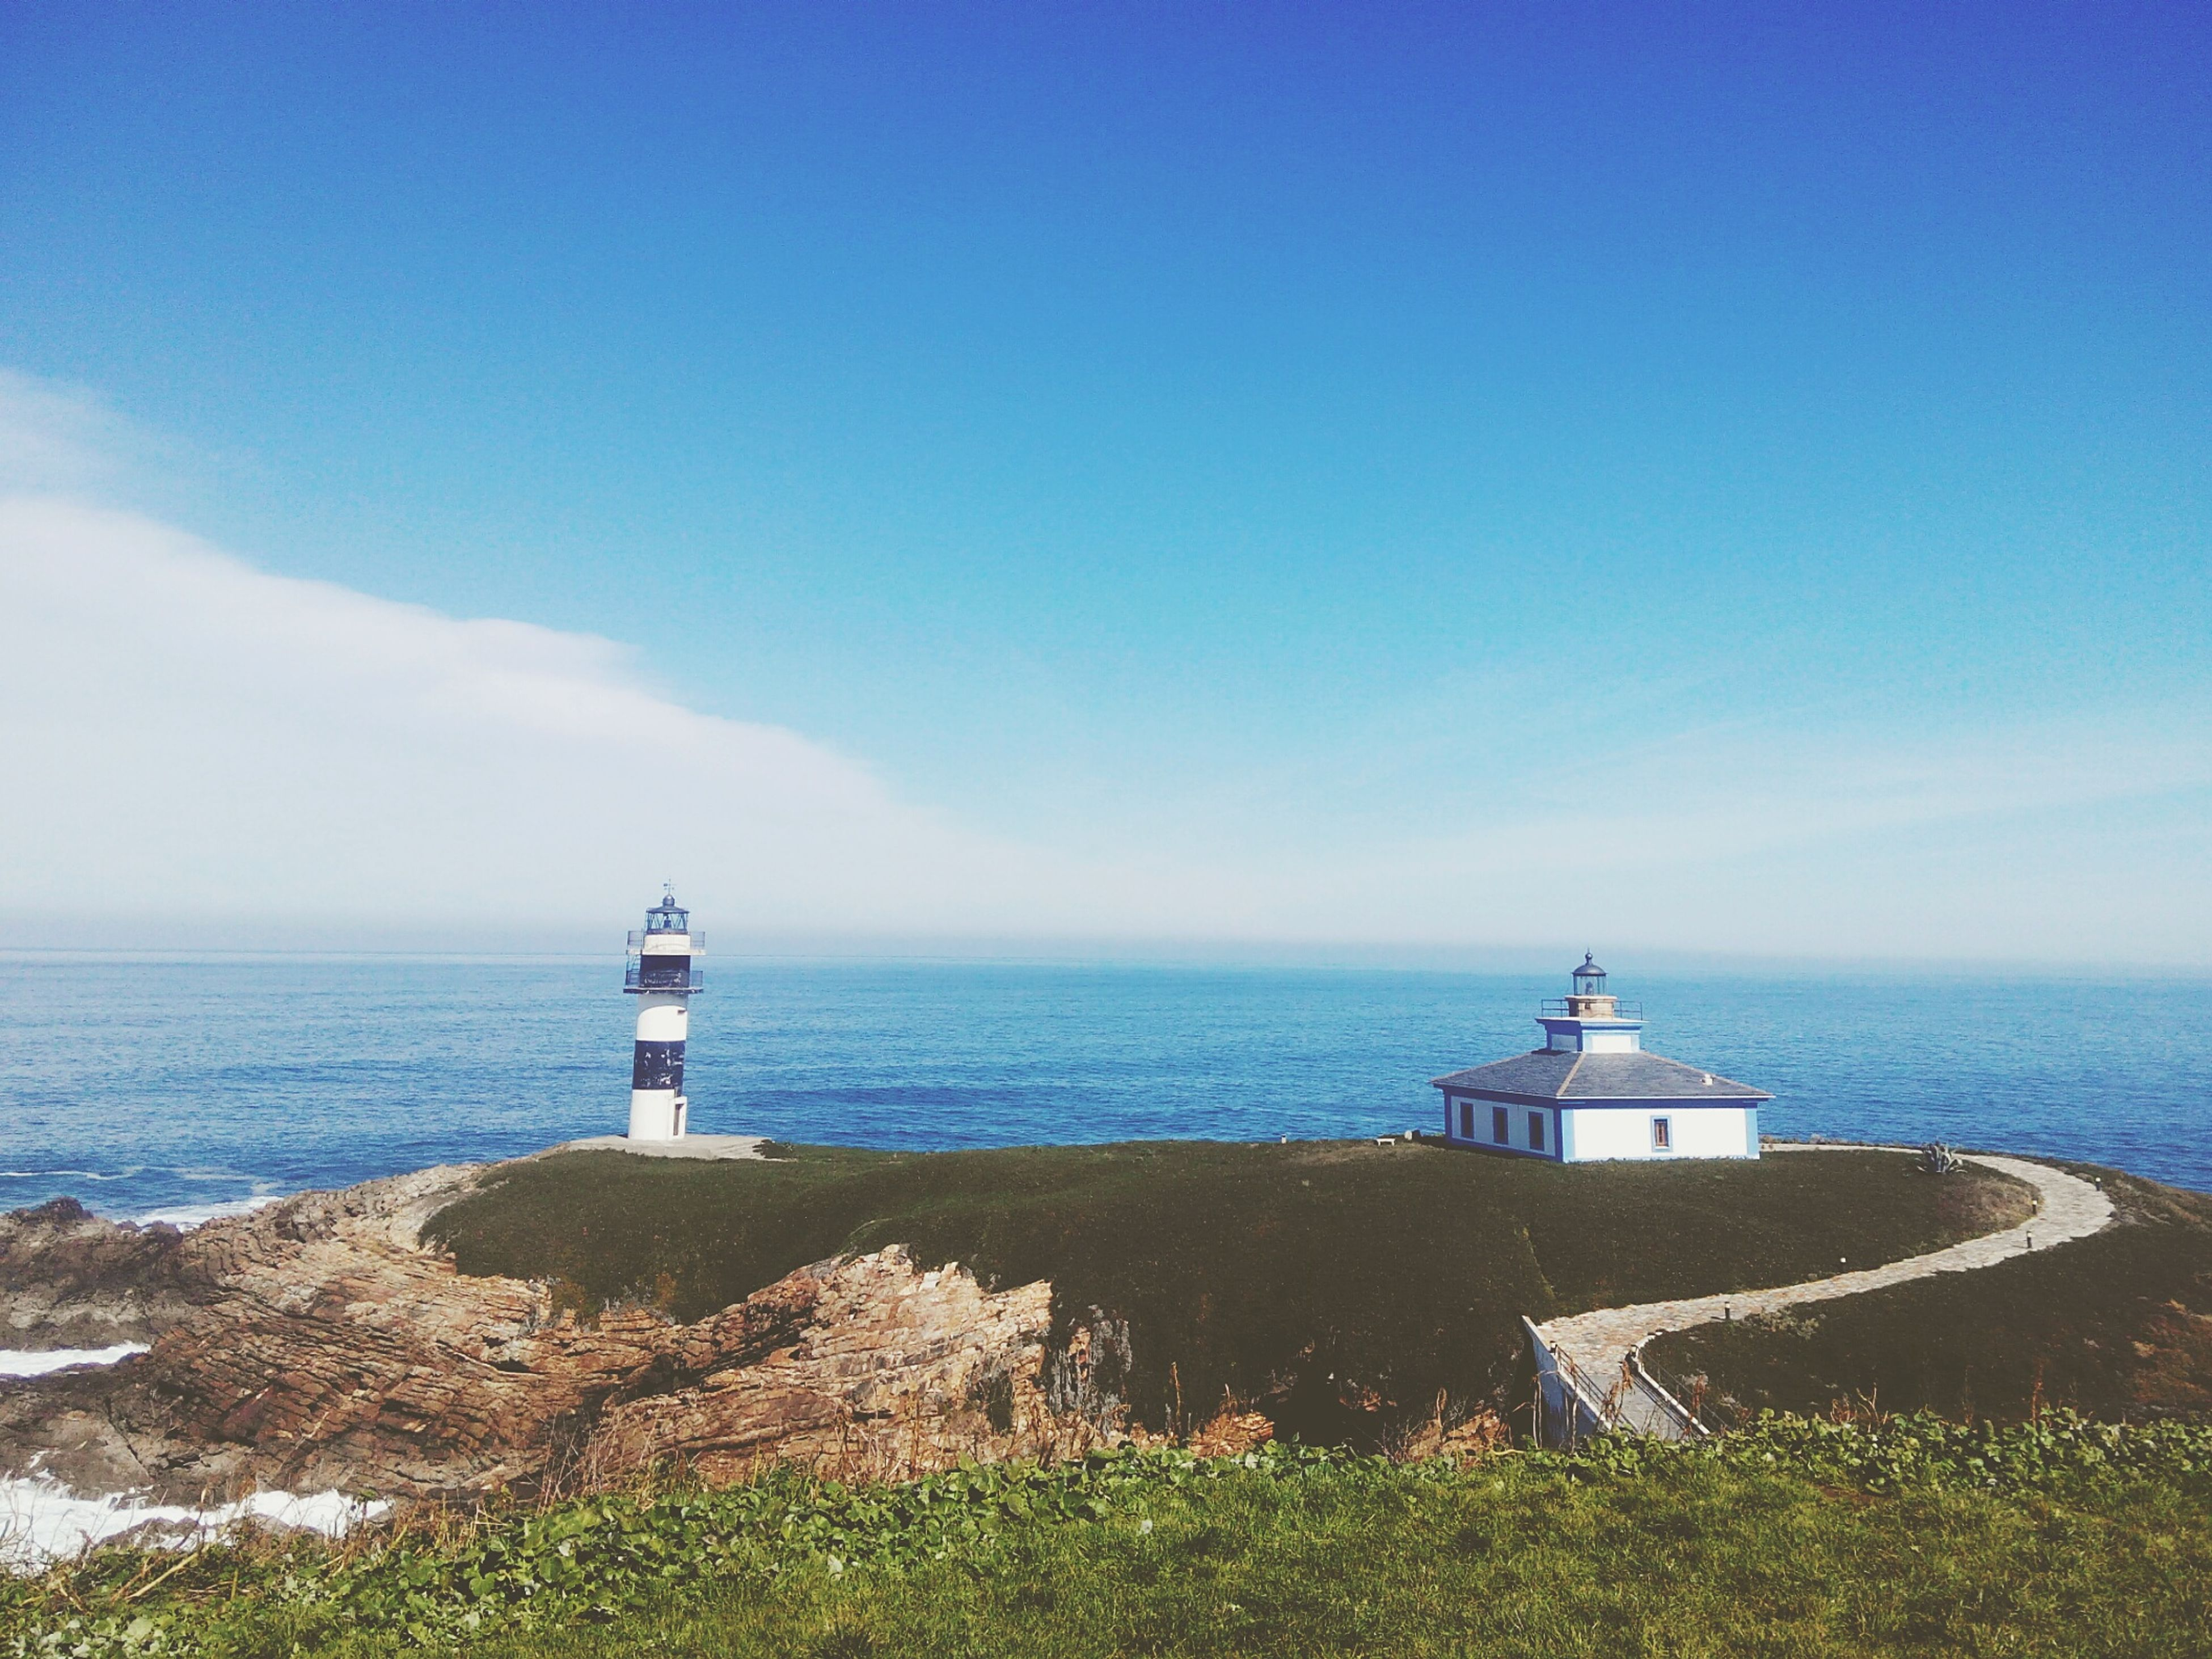 lighthouse, sea, guidance, horizon over water, direction, protection, water, safety, security, built structure, architecture, sky, tower, tranquility, tranquil scene, blue, building exterior, scenics, beauty in nature, nature